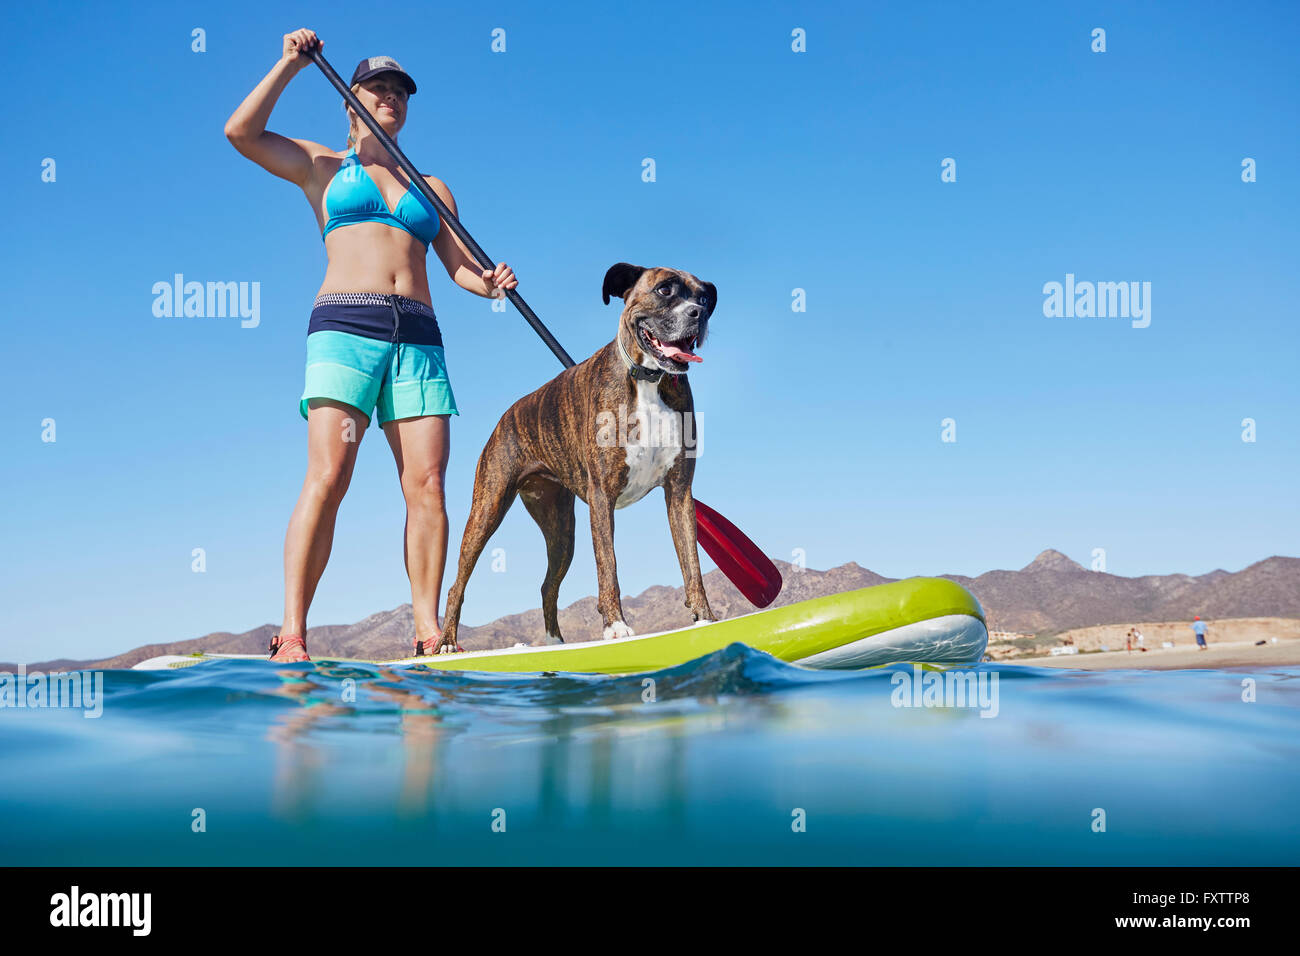 Woman paddle-boarding with dog - Stock Image